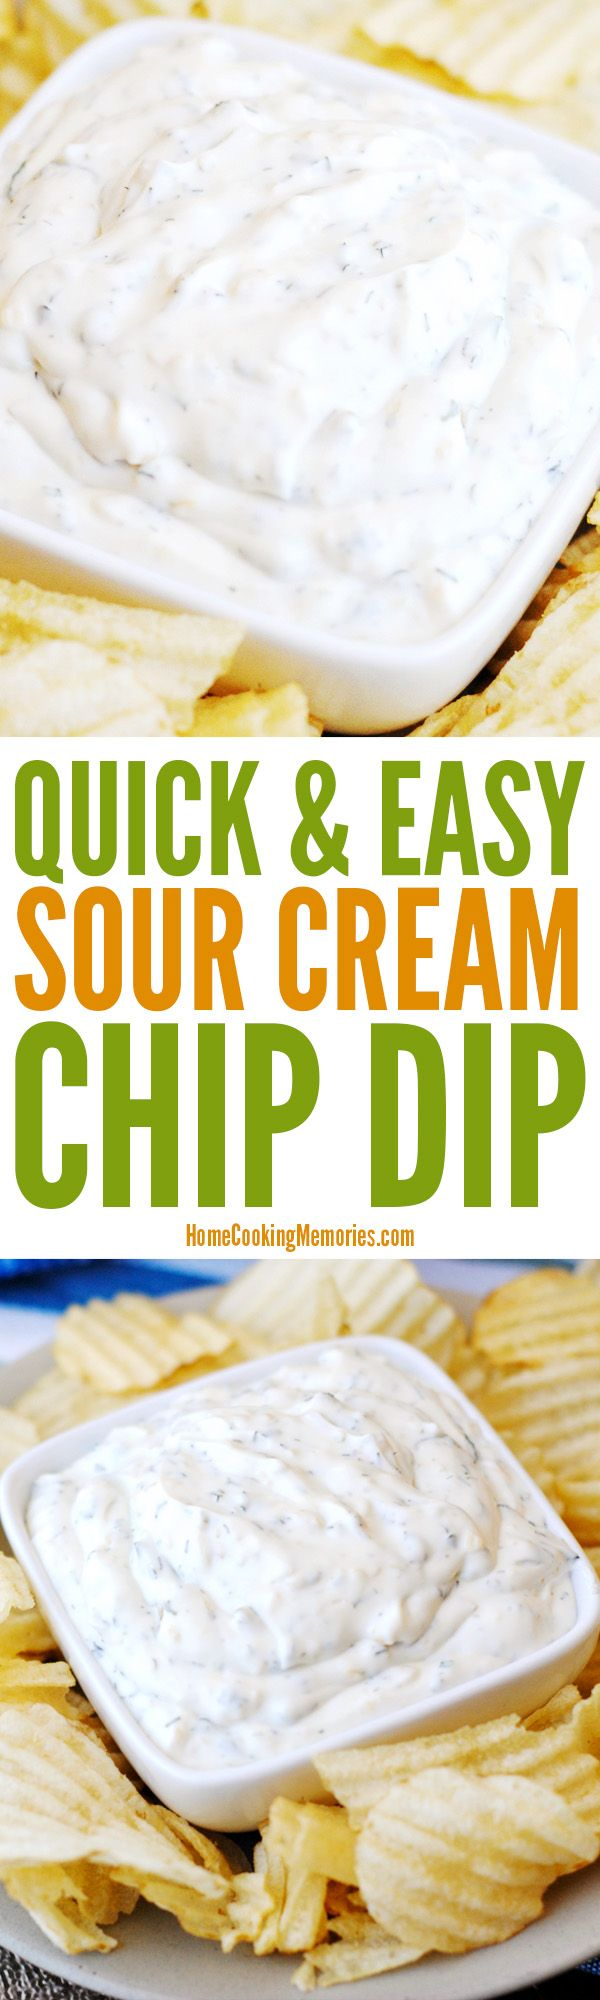 Quick & Easy Sour Cream Chip Dip recipe for your next party, get-together, or game day. It uses a full 16-ounce container of sour cream, plus four simple pantry ingredients: dried minced onion, dried parsley, dill weed, and garlic salt. DELICIOUS!